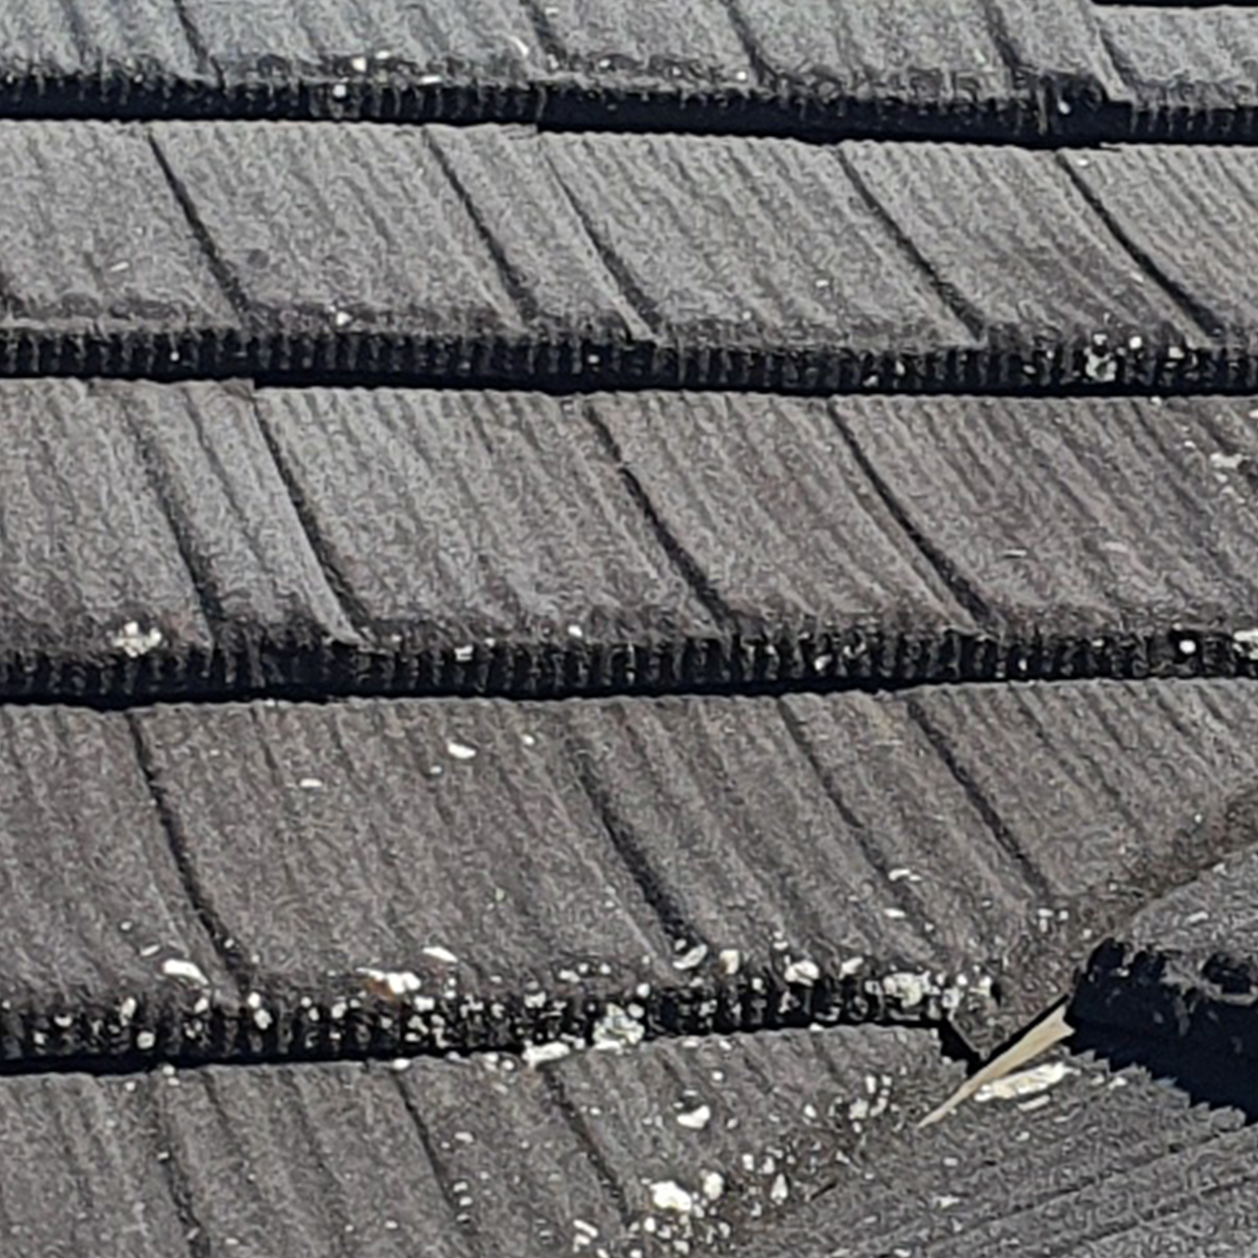 Roof Cleaning - Lichen and Algae on Decrabond tile roof